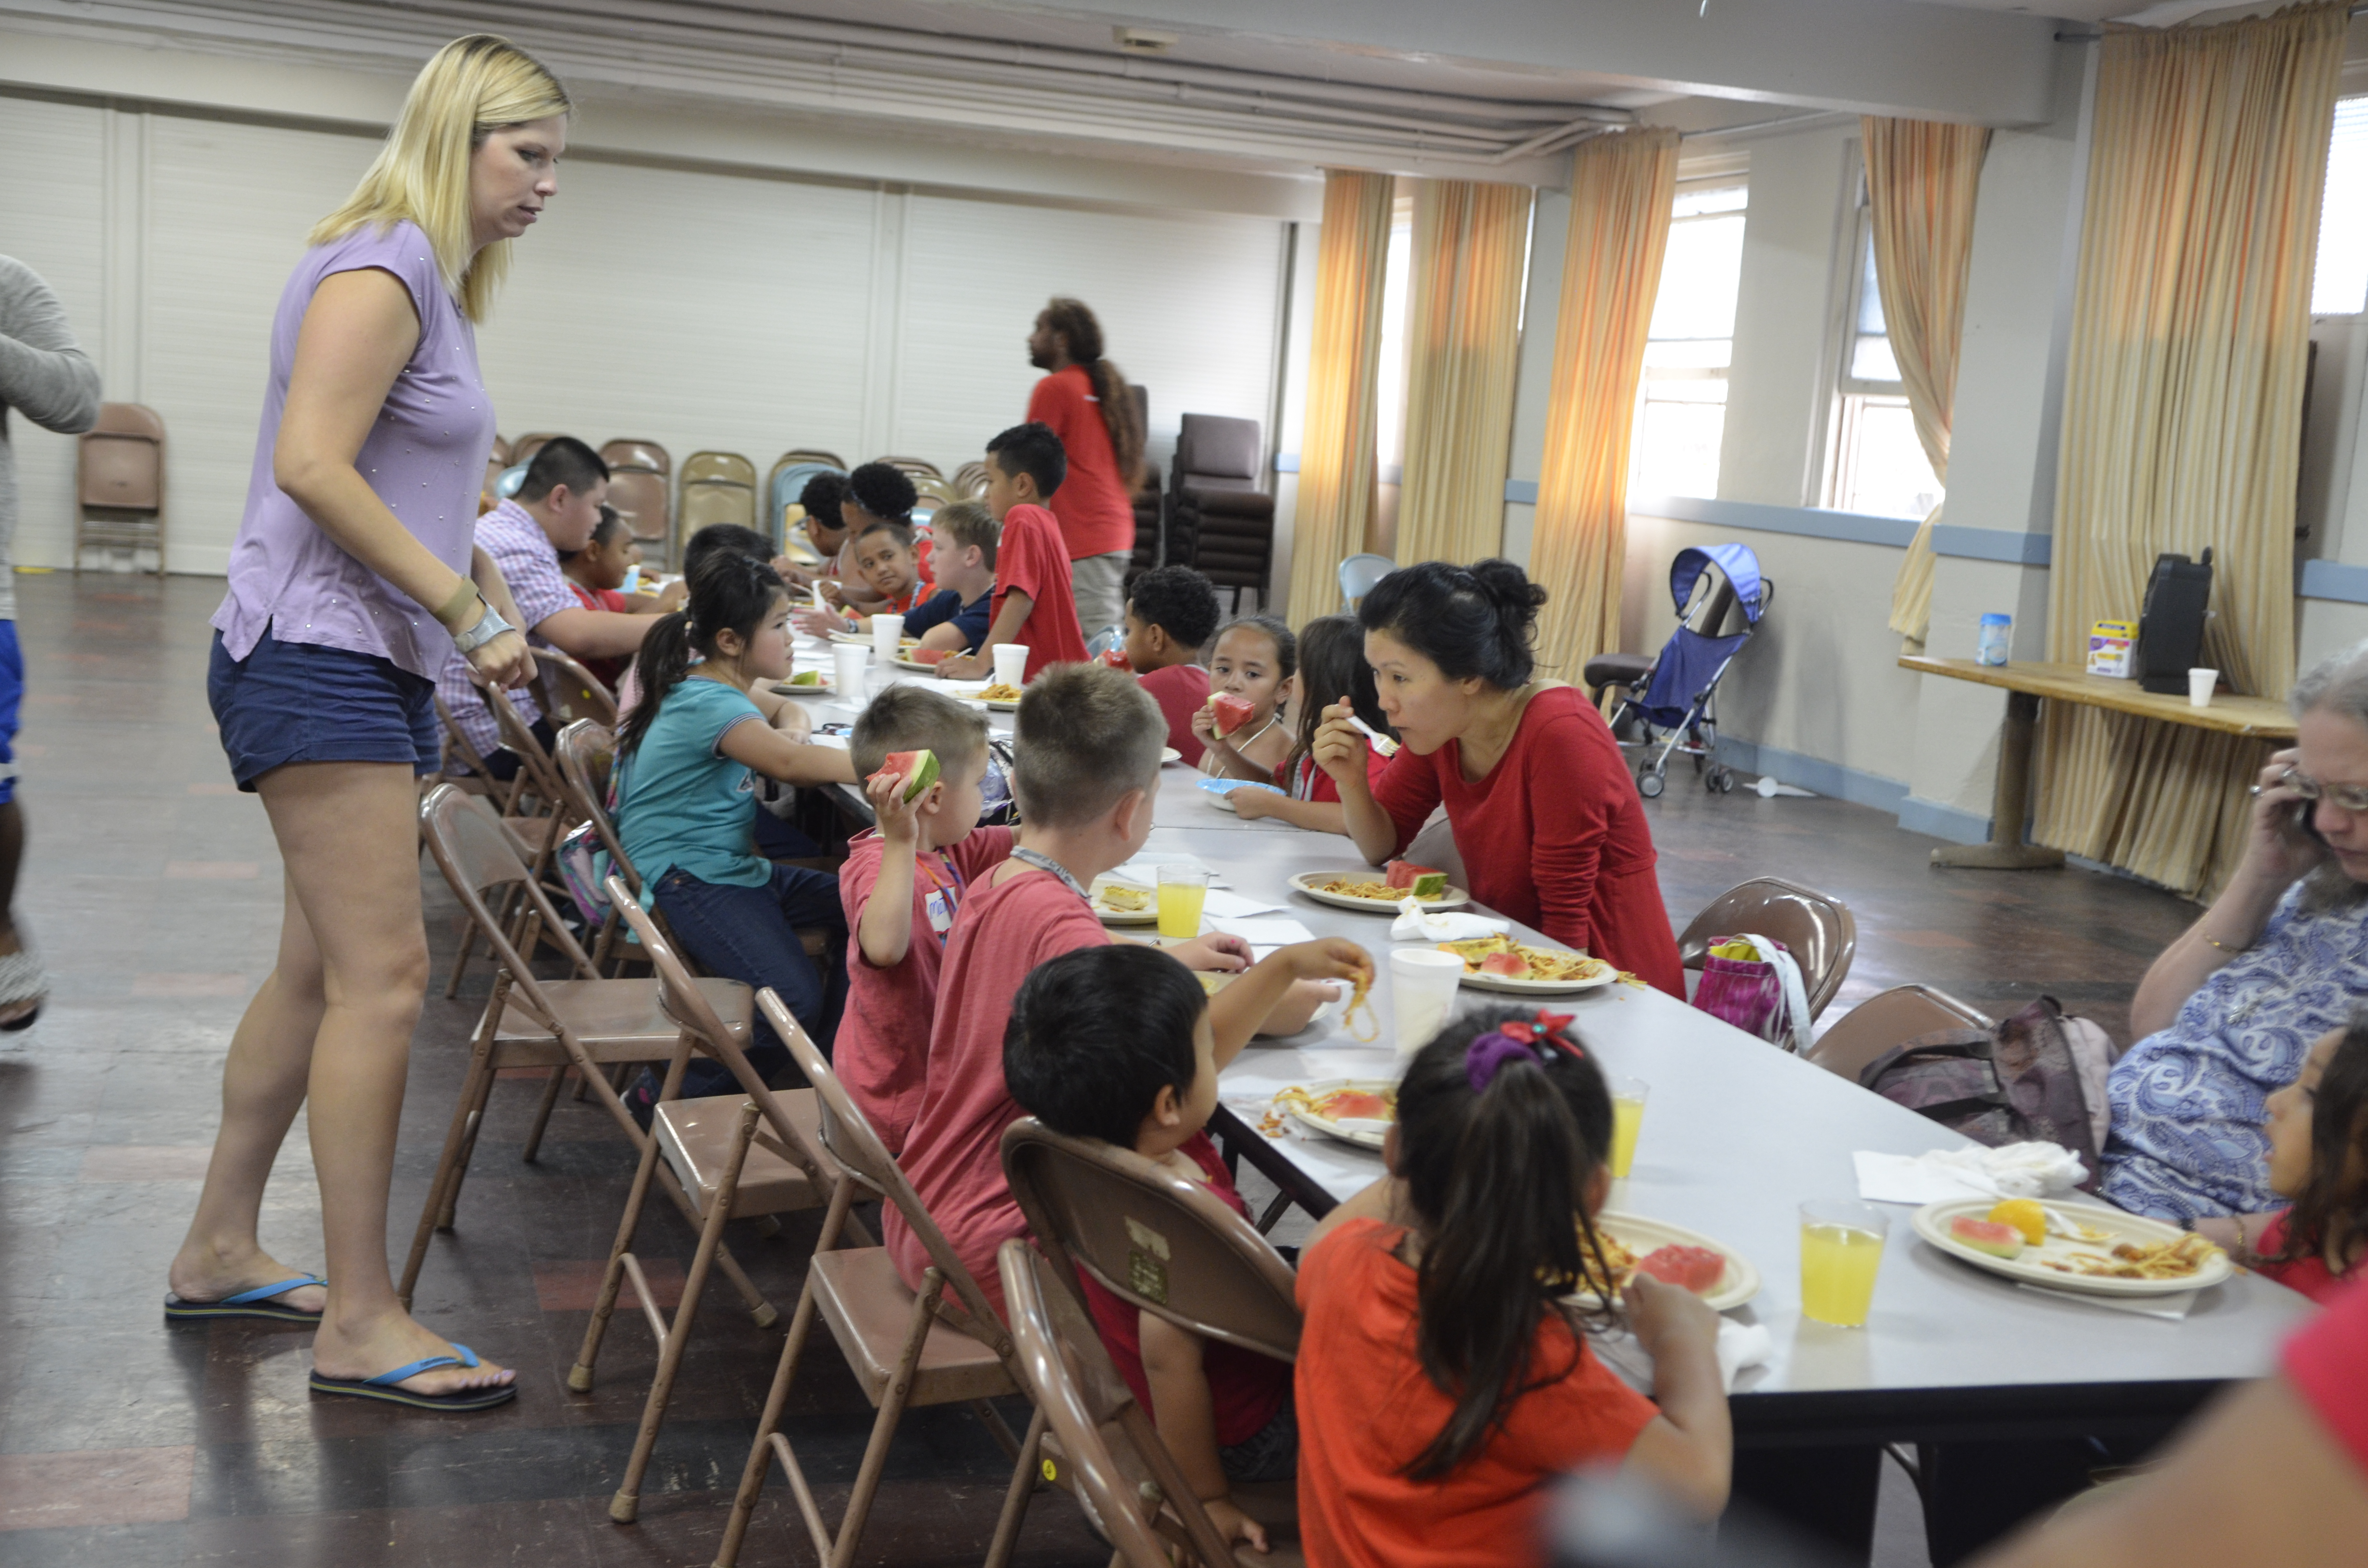 monrovia duarte summer church vbs